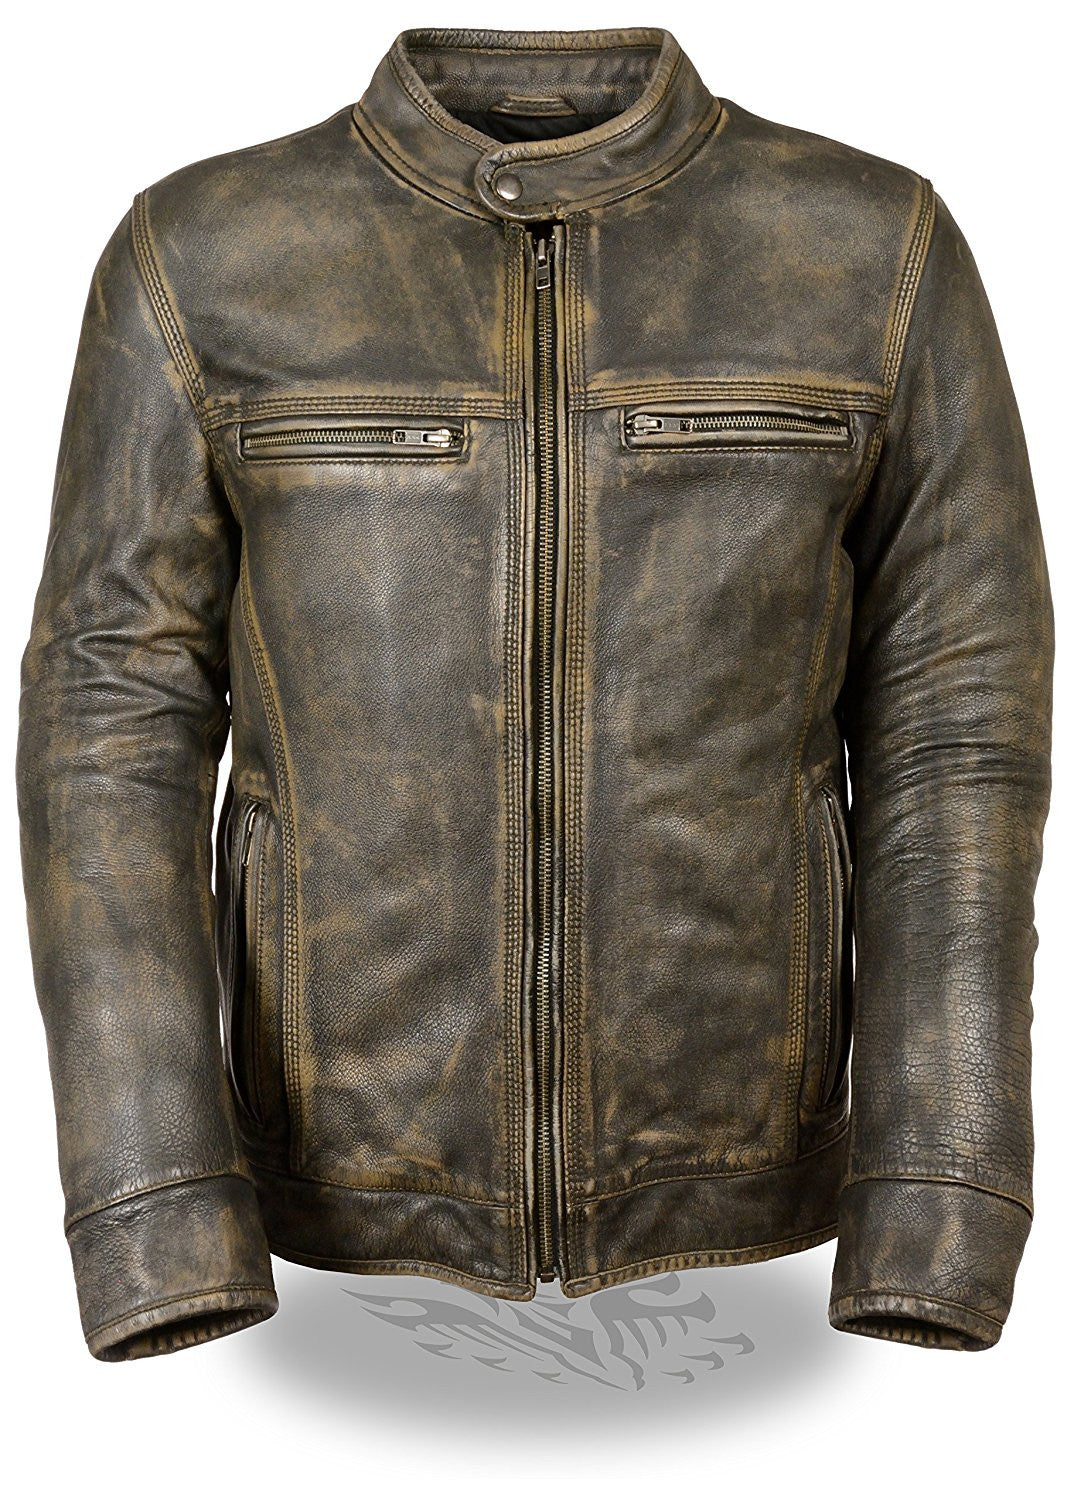 Milwaukee Men's Distressed Brown Leather Scooter Jacket w/ Triple Stitch Detailing - Maine-Line Leather - 1